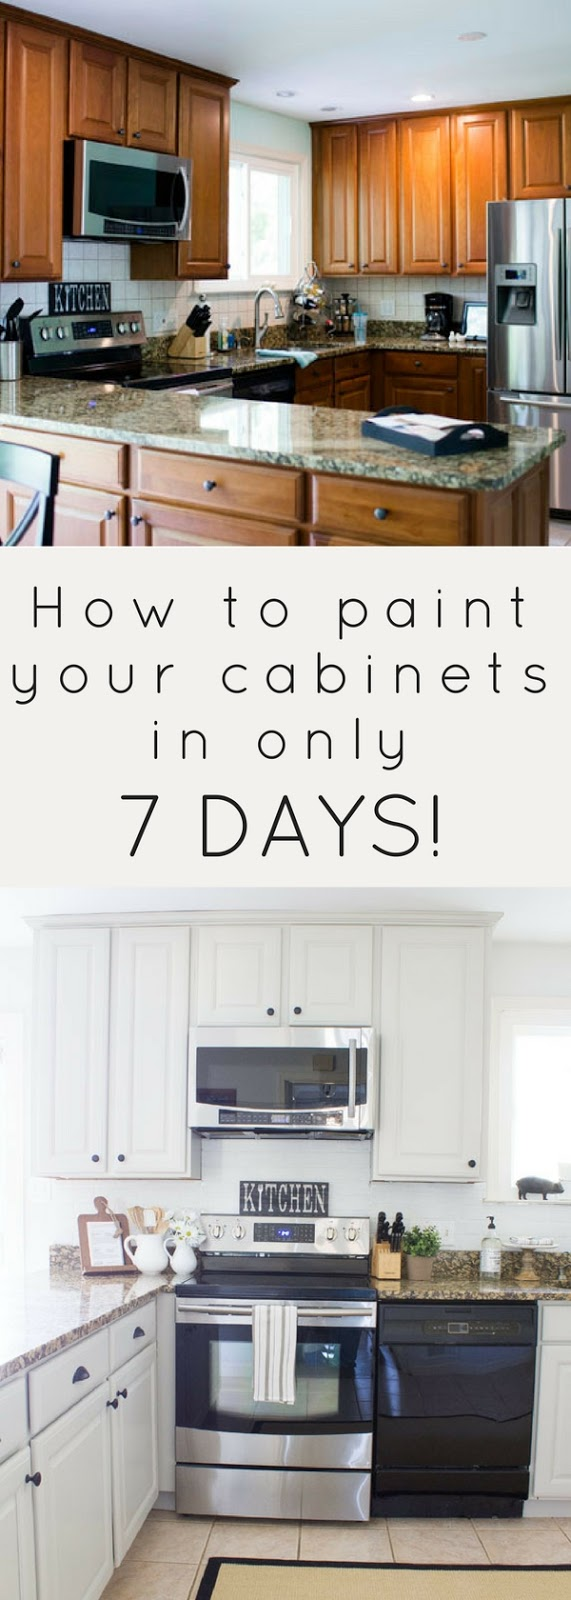 How to paint your kitchen cabinets fast! With the right tools, it's easy! Get the tutorial and get your kitchen back in order in only 7 days!